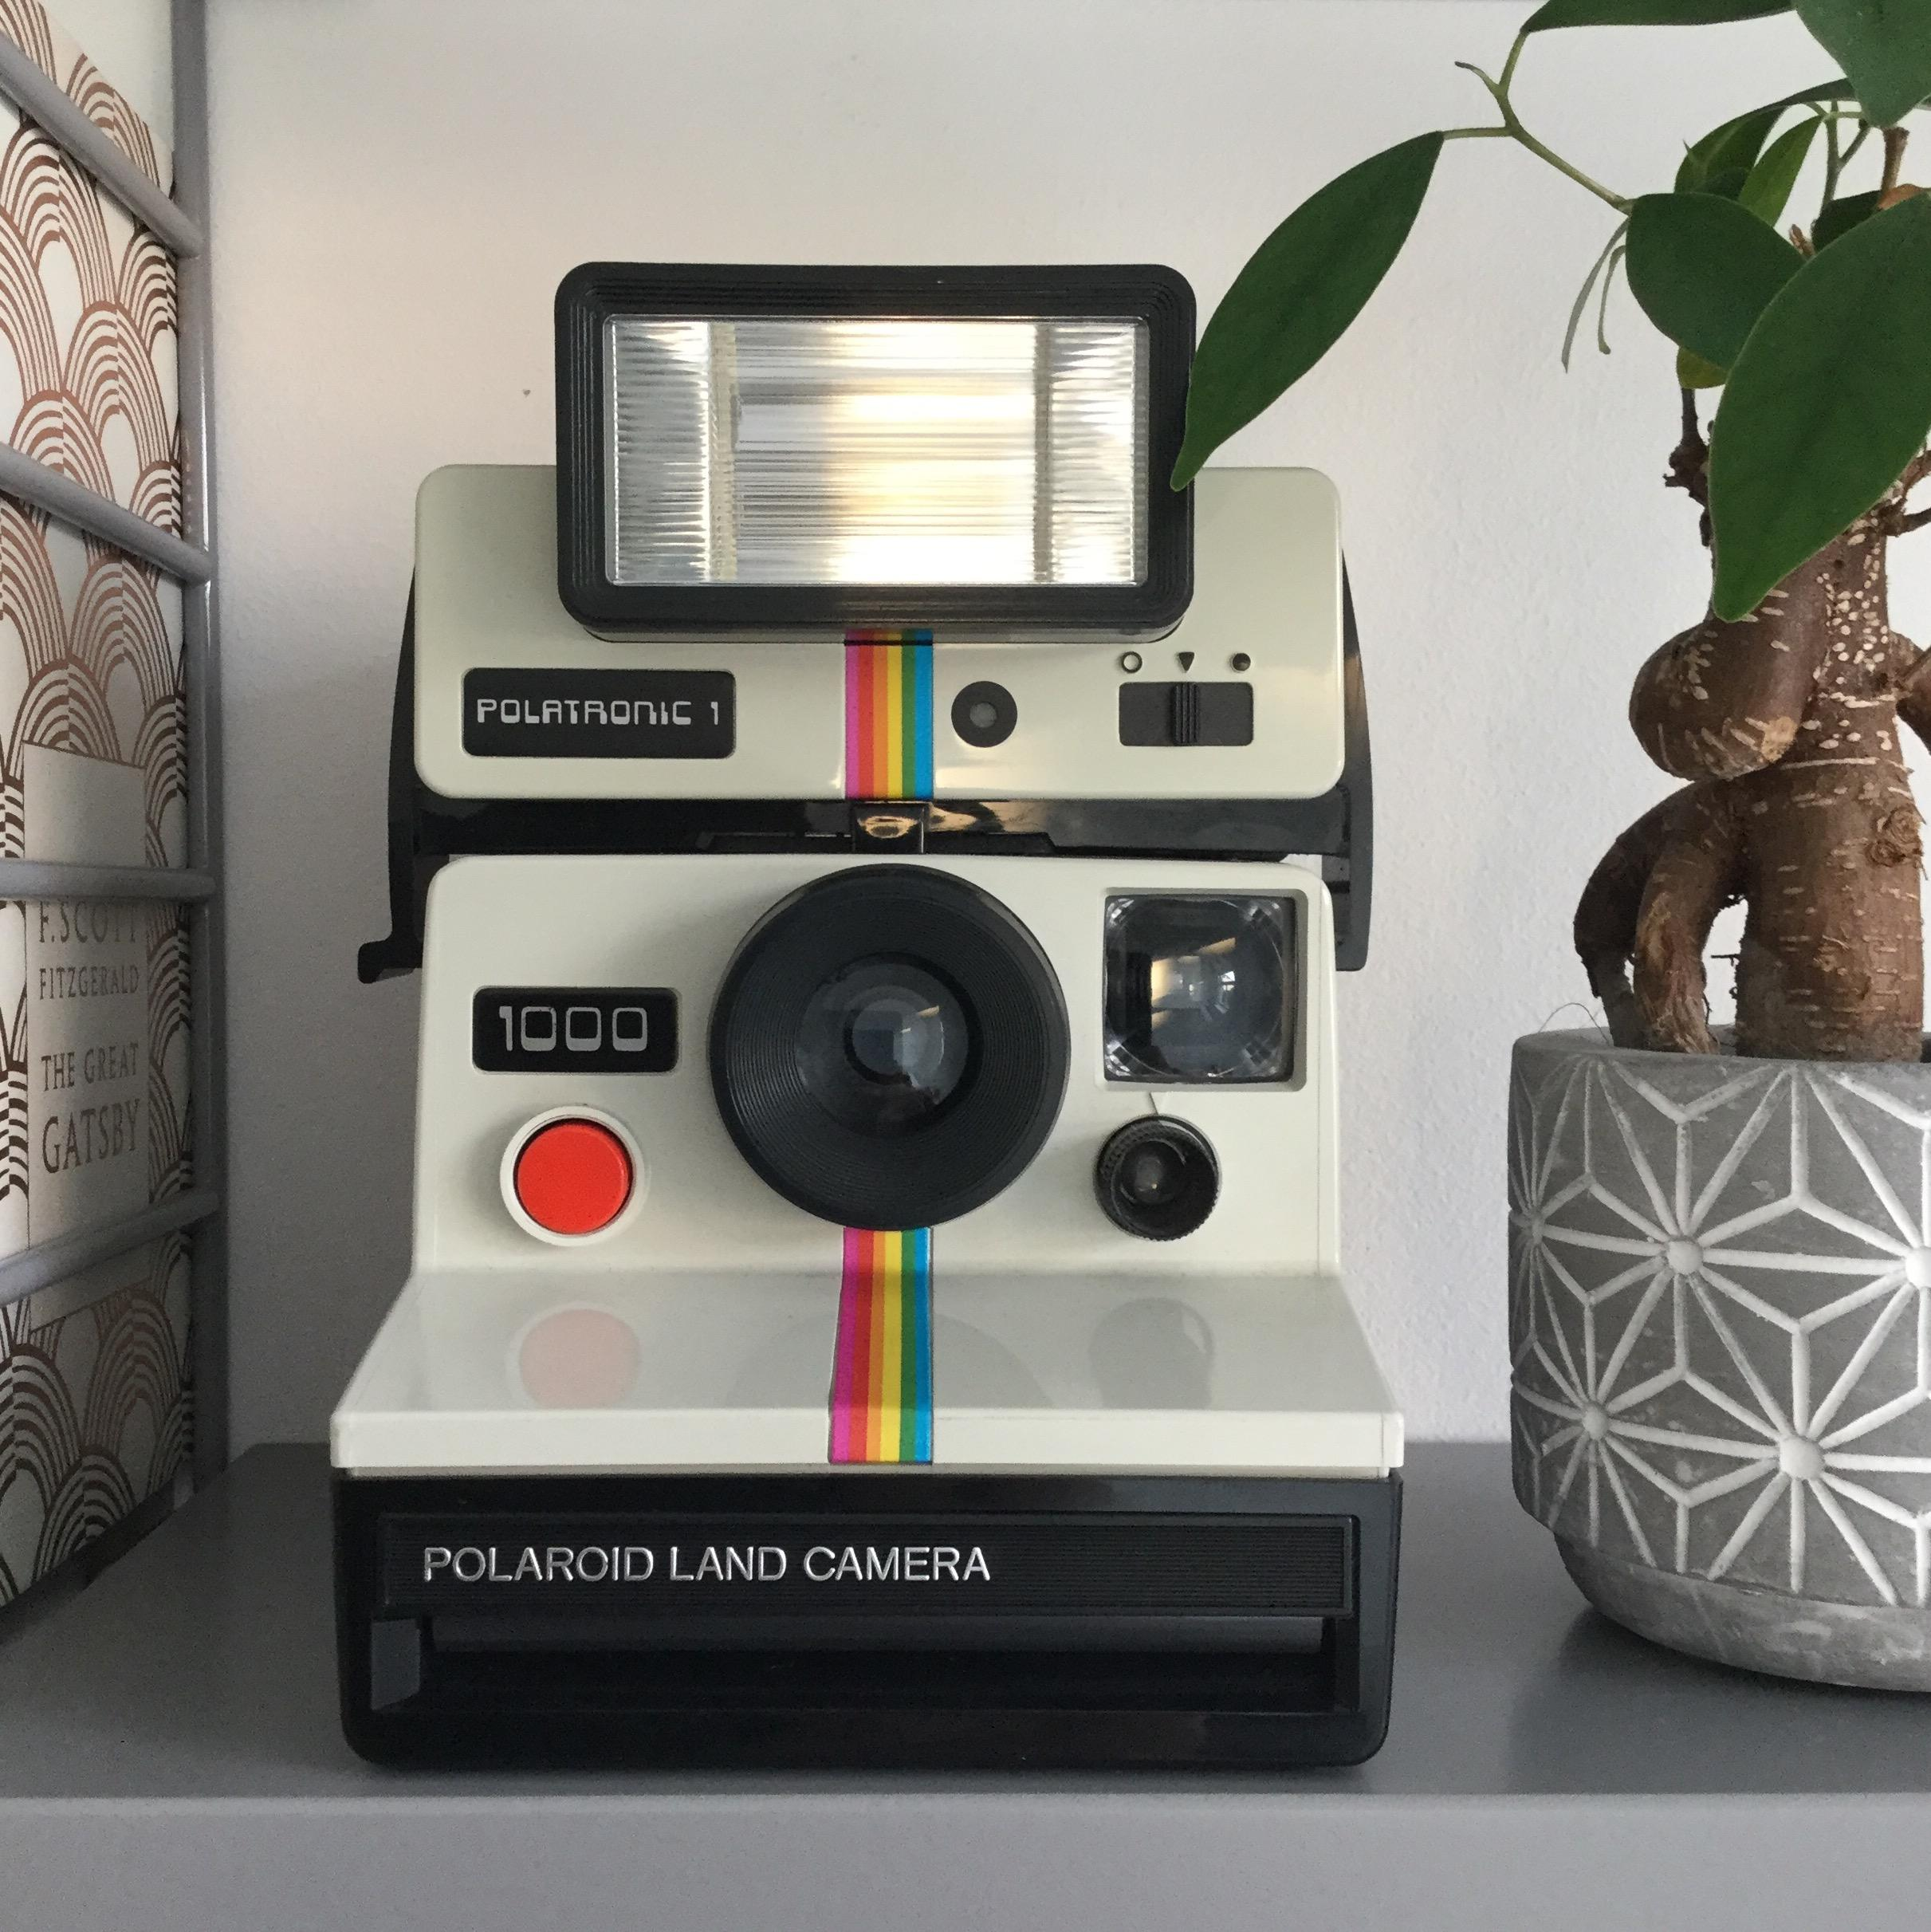 Polaroid #vintage #kamera #deko #stringregal